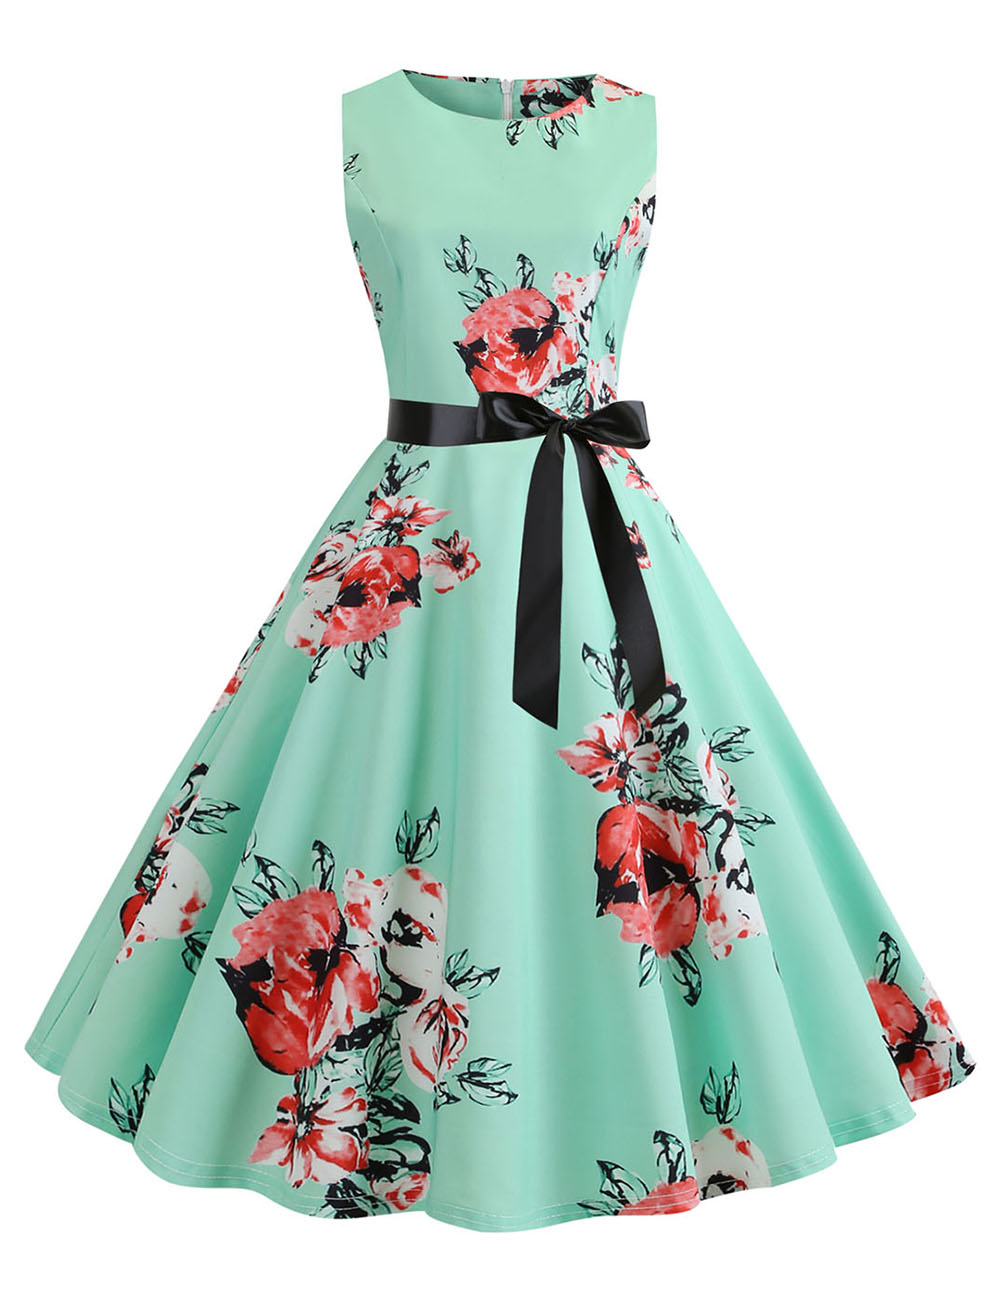 //cdn.affectcloud.com/hexinfashion/upload/imgs/Dress/Midi_Dress/VZ190452-M04/VZ190452-M04-201911055dc120a63881a.jpg